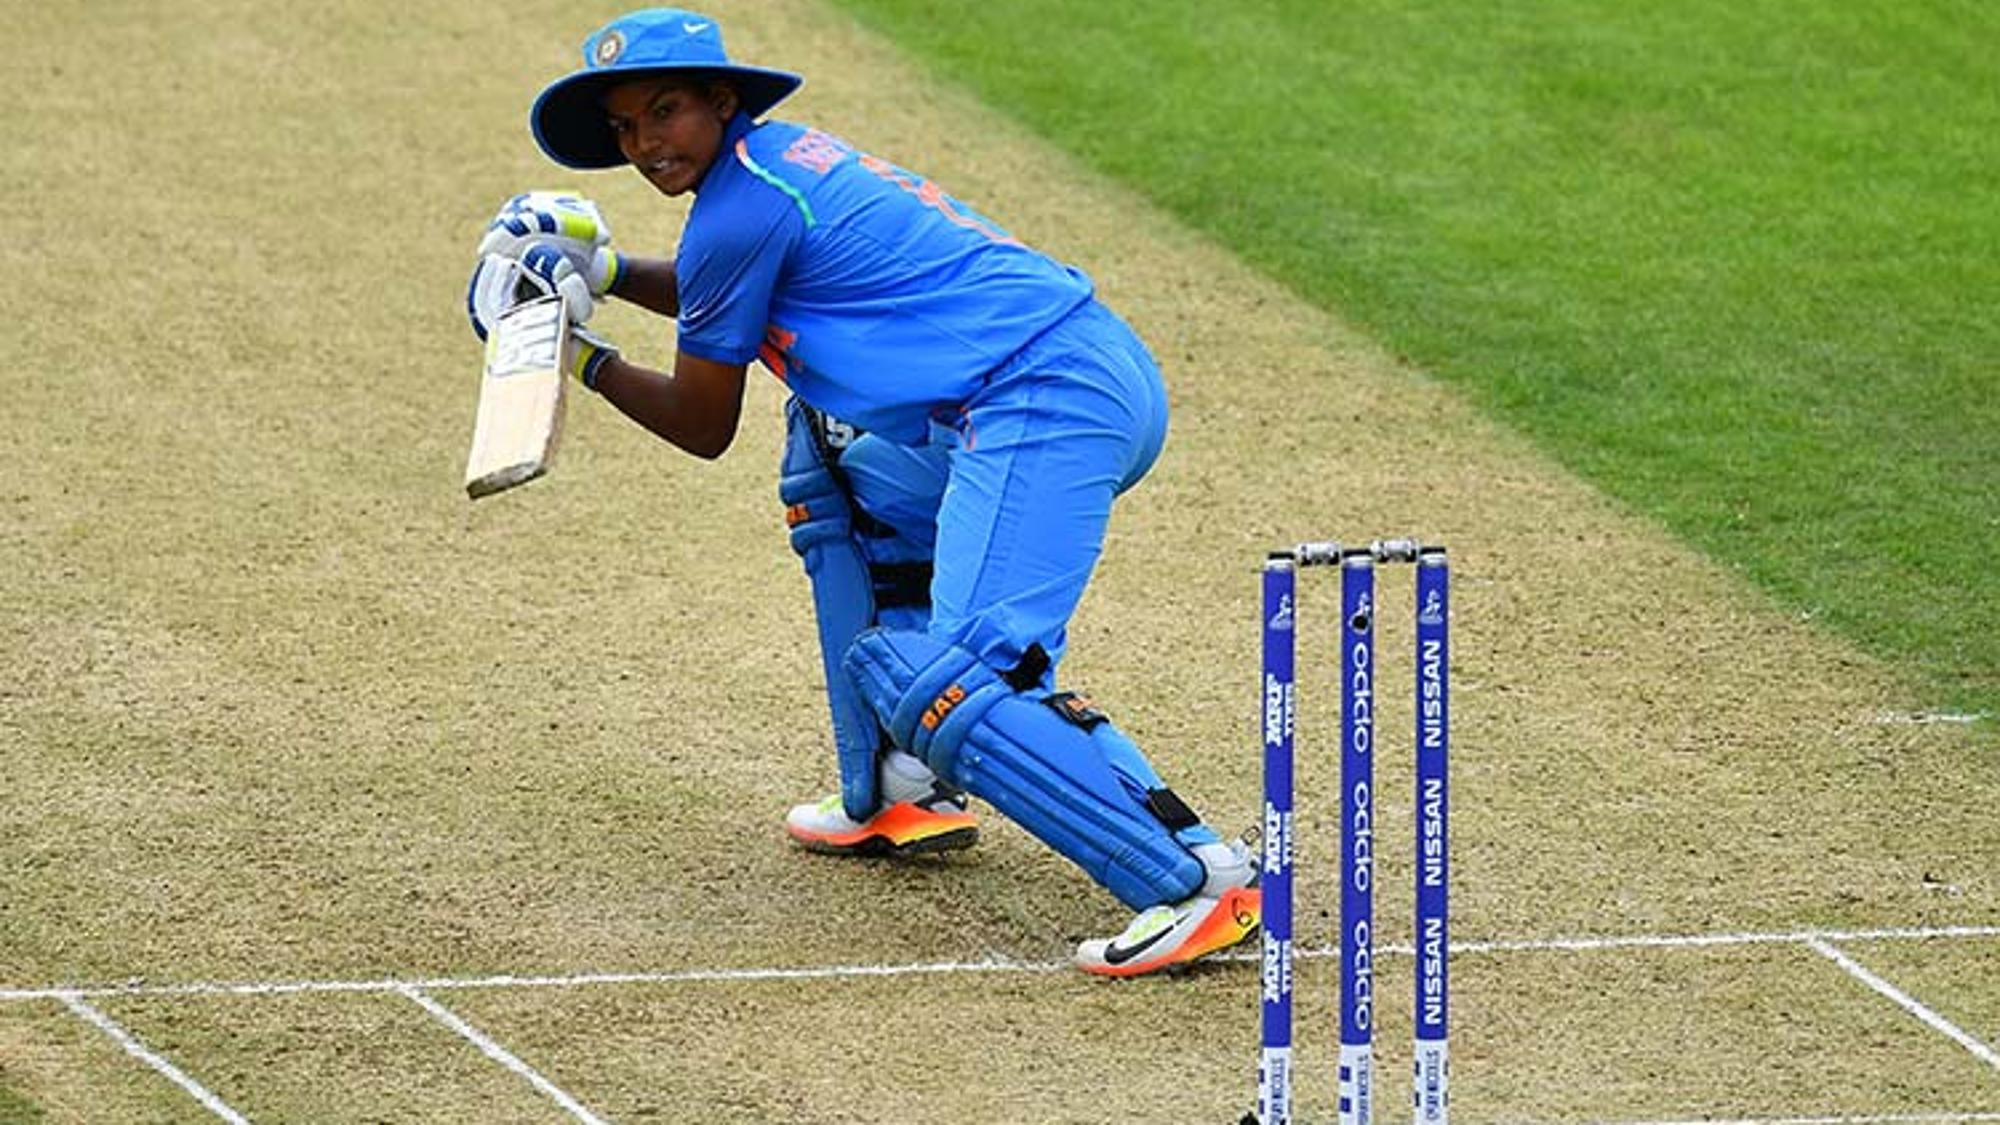 Indian Cricketer Deepti Sharma In ICC Women's World Cup Against Srilanka